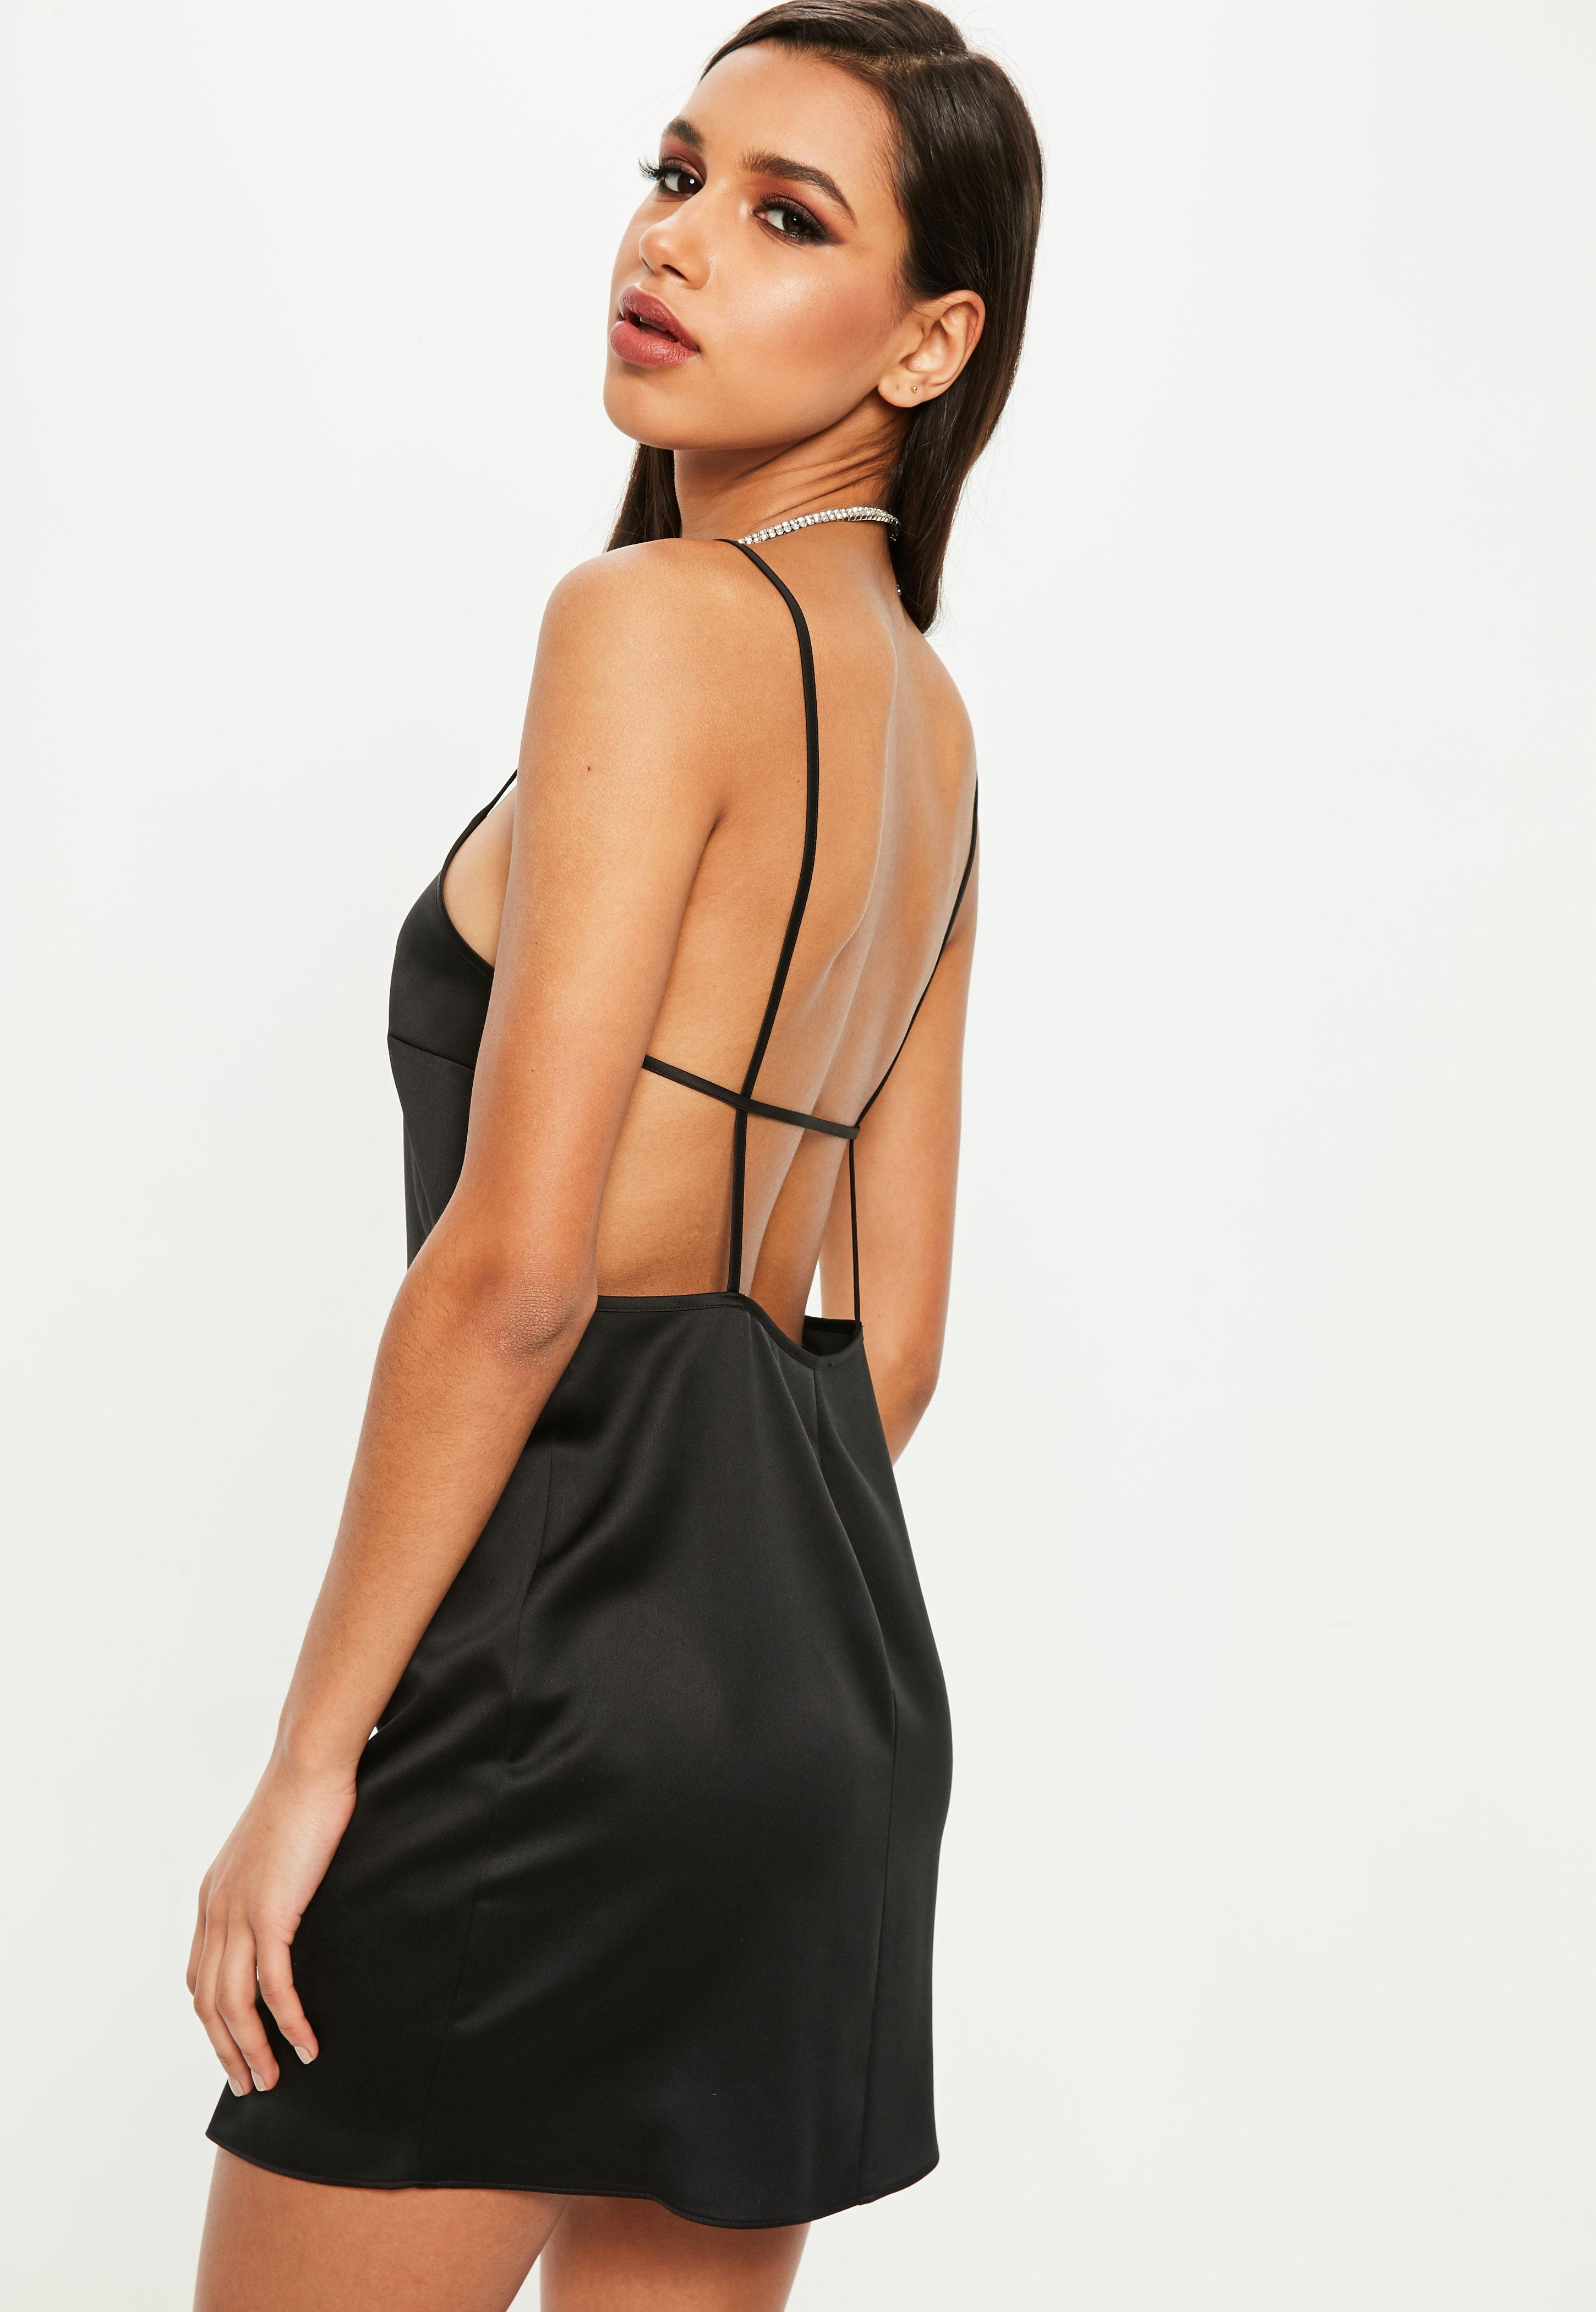 Birthday Dresses - Sweet 16, 18th & 21st Dresses | Missguided